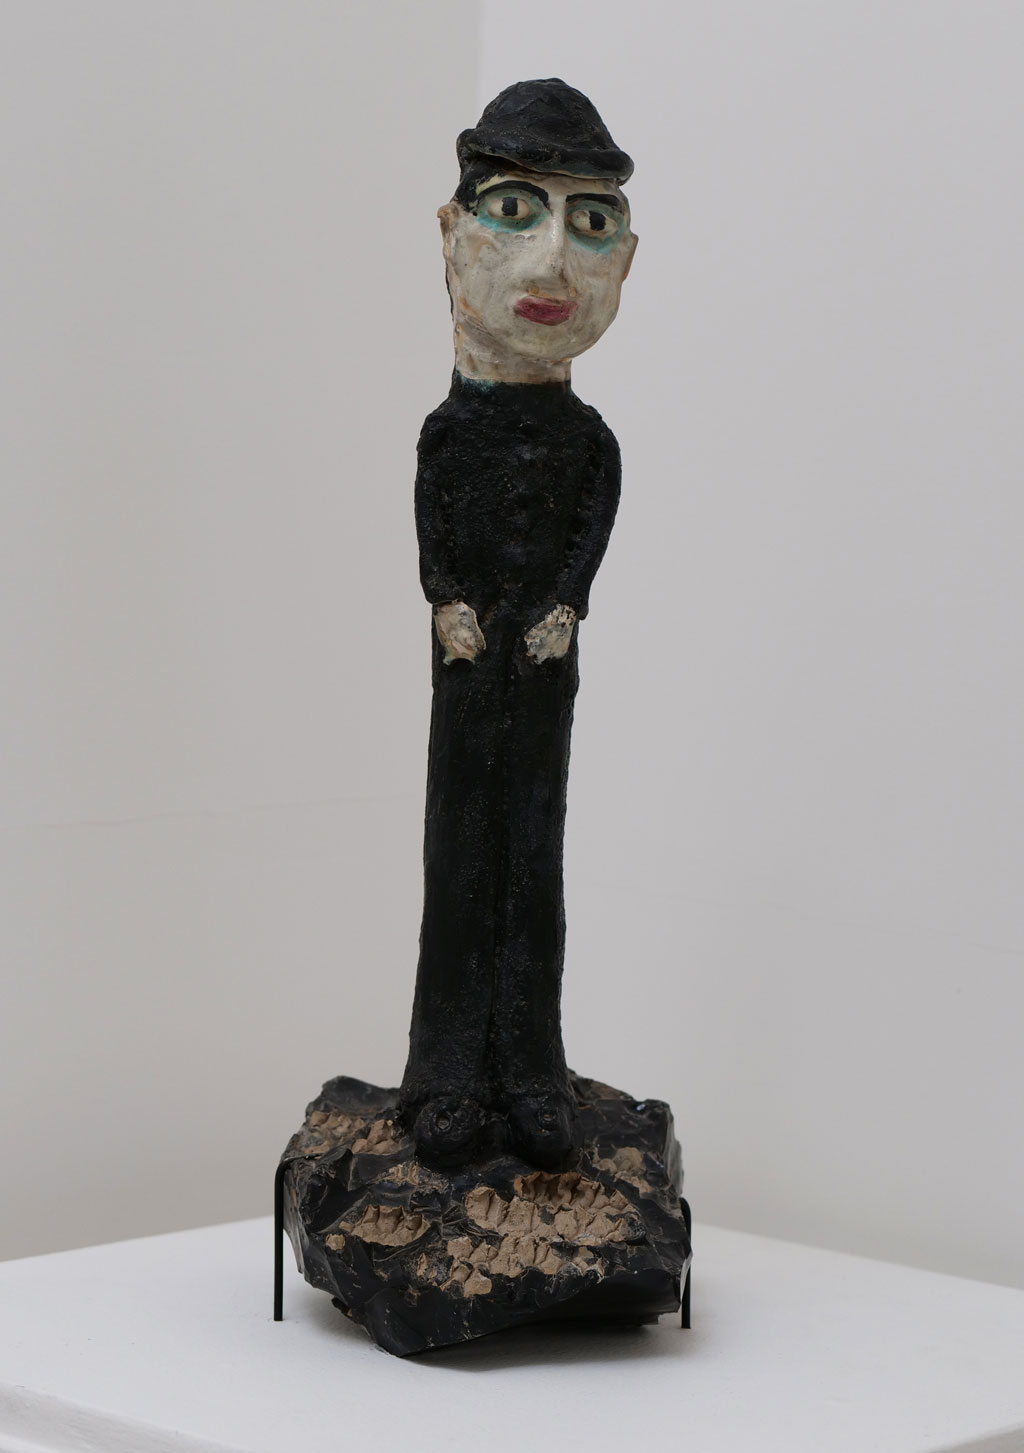 Beatrice Wood, Figure, 1970s. Glazed ceramic, California Visionaries: Seminal Studio Craft, Featuring Works from the Forrest L. Merrill Collection